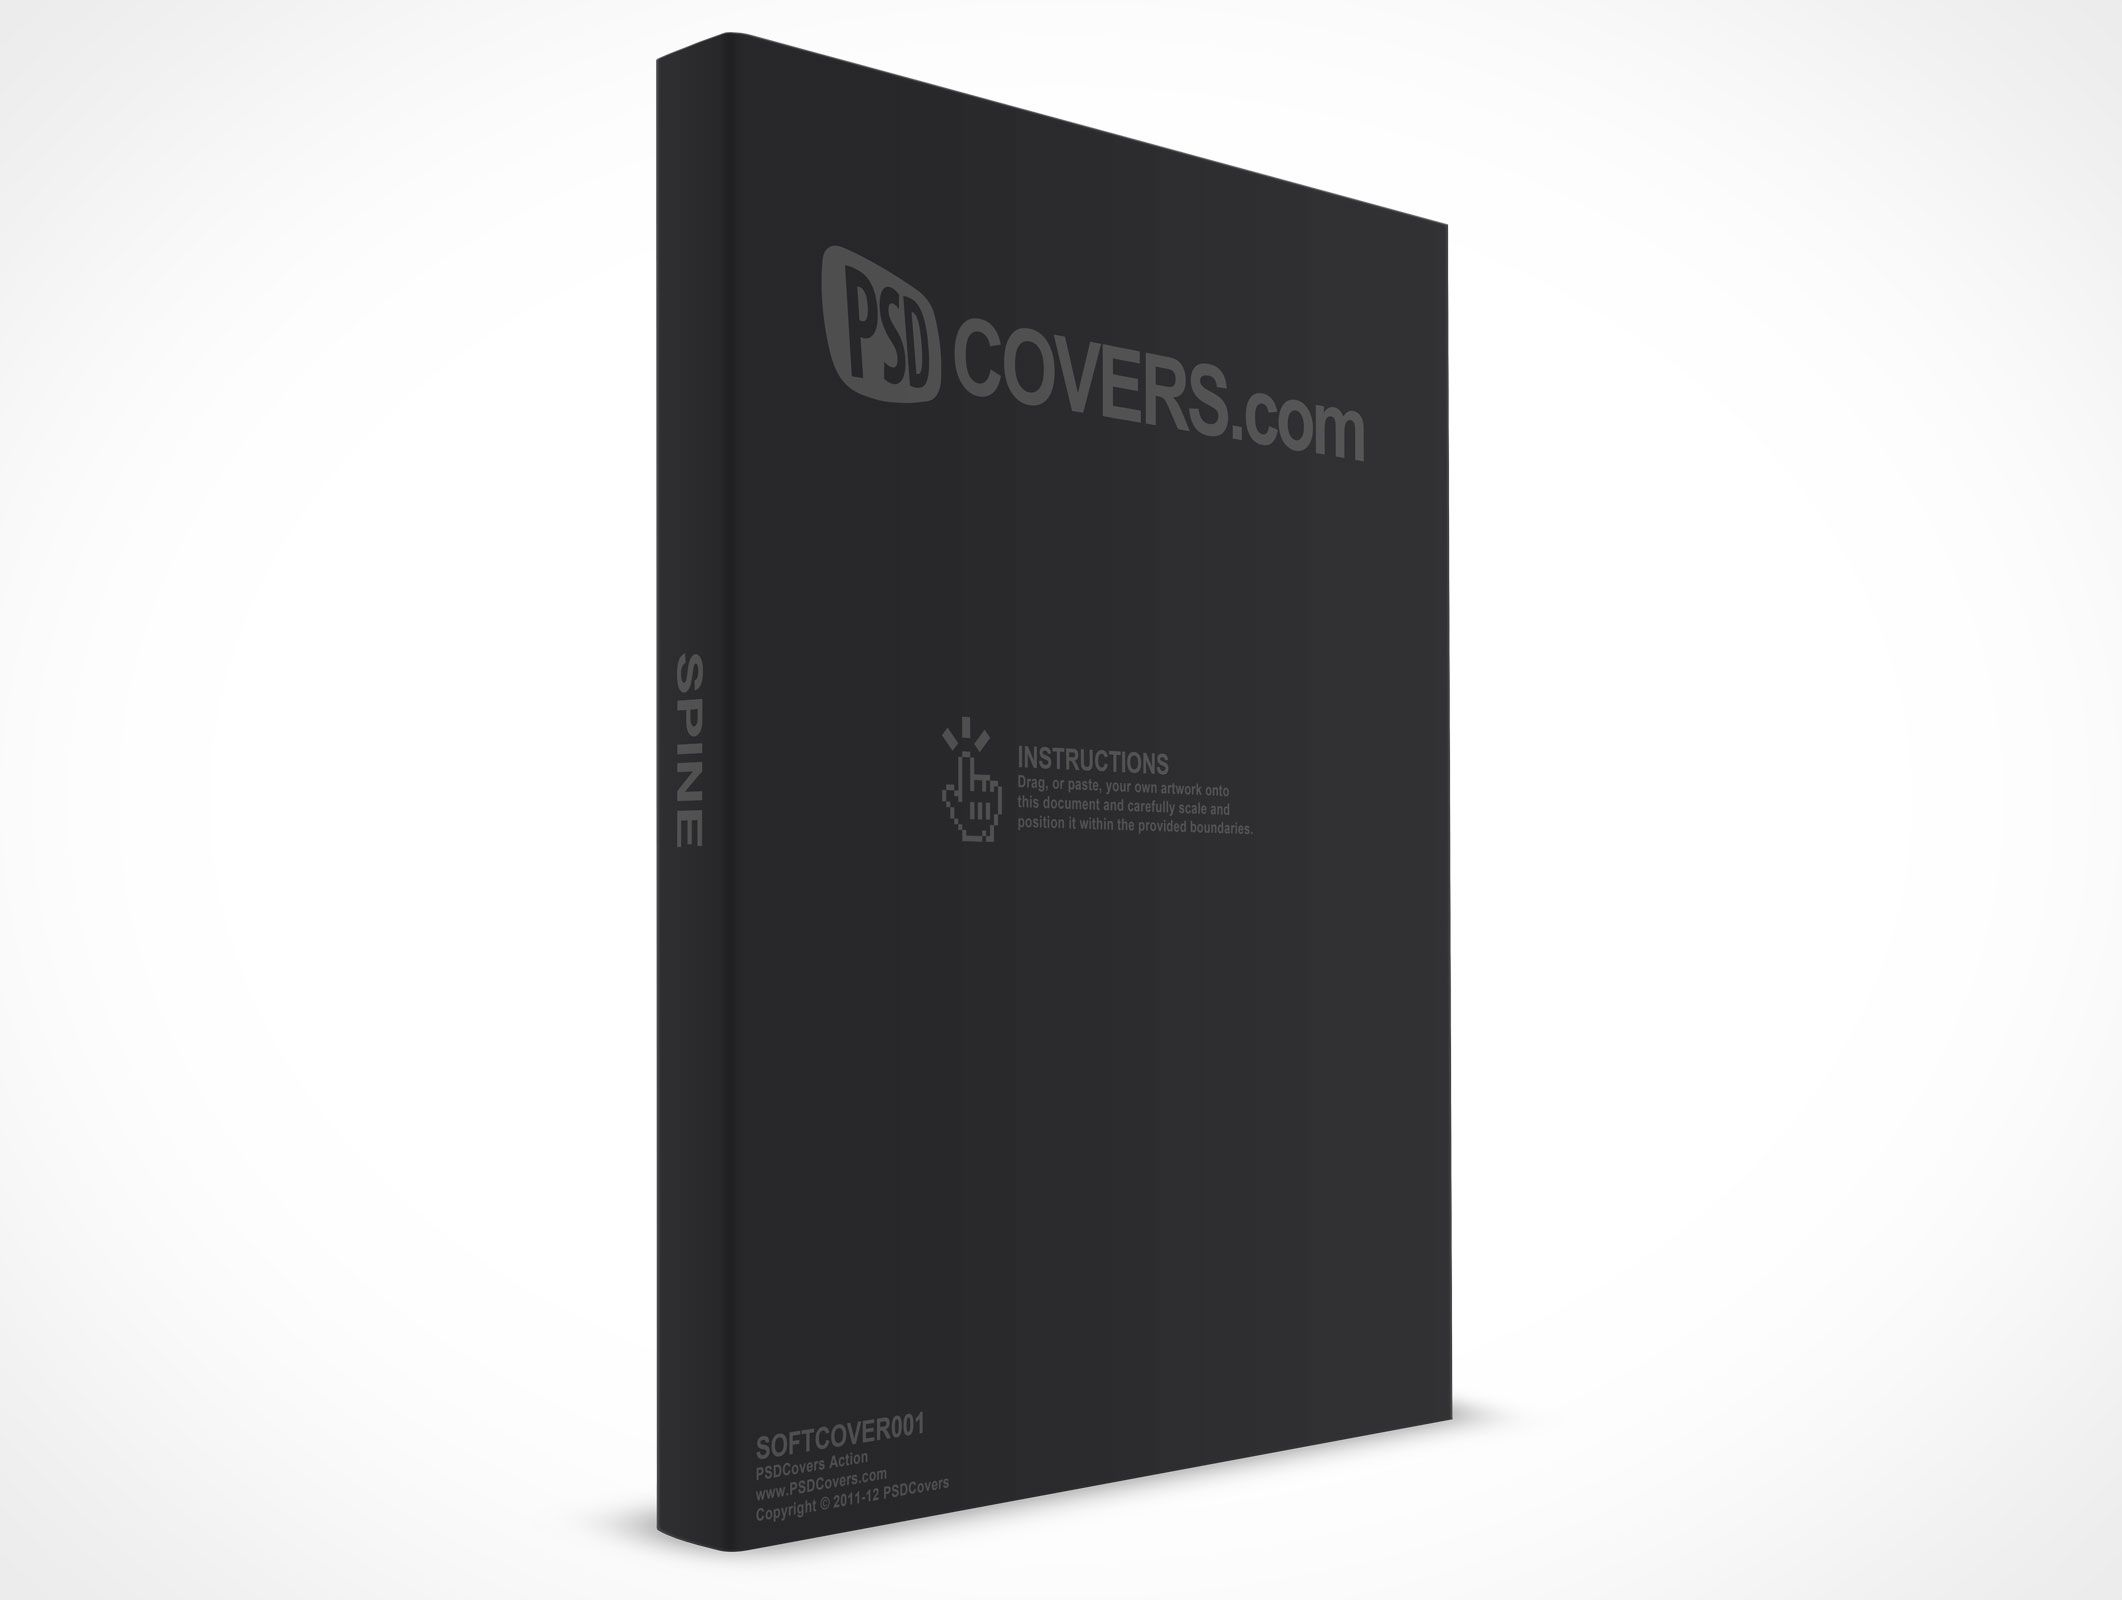 300 Page Softcover Handbook Ebook Cover Ebook Cover Psd Mockup Psd